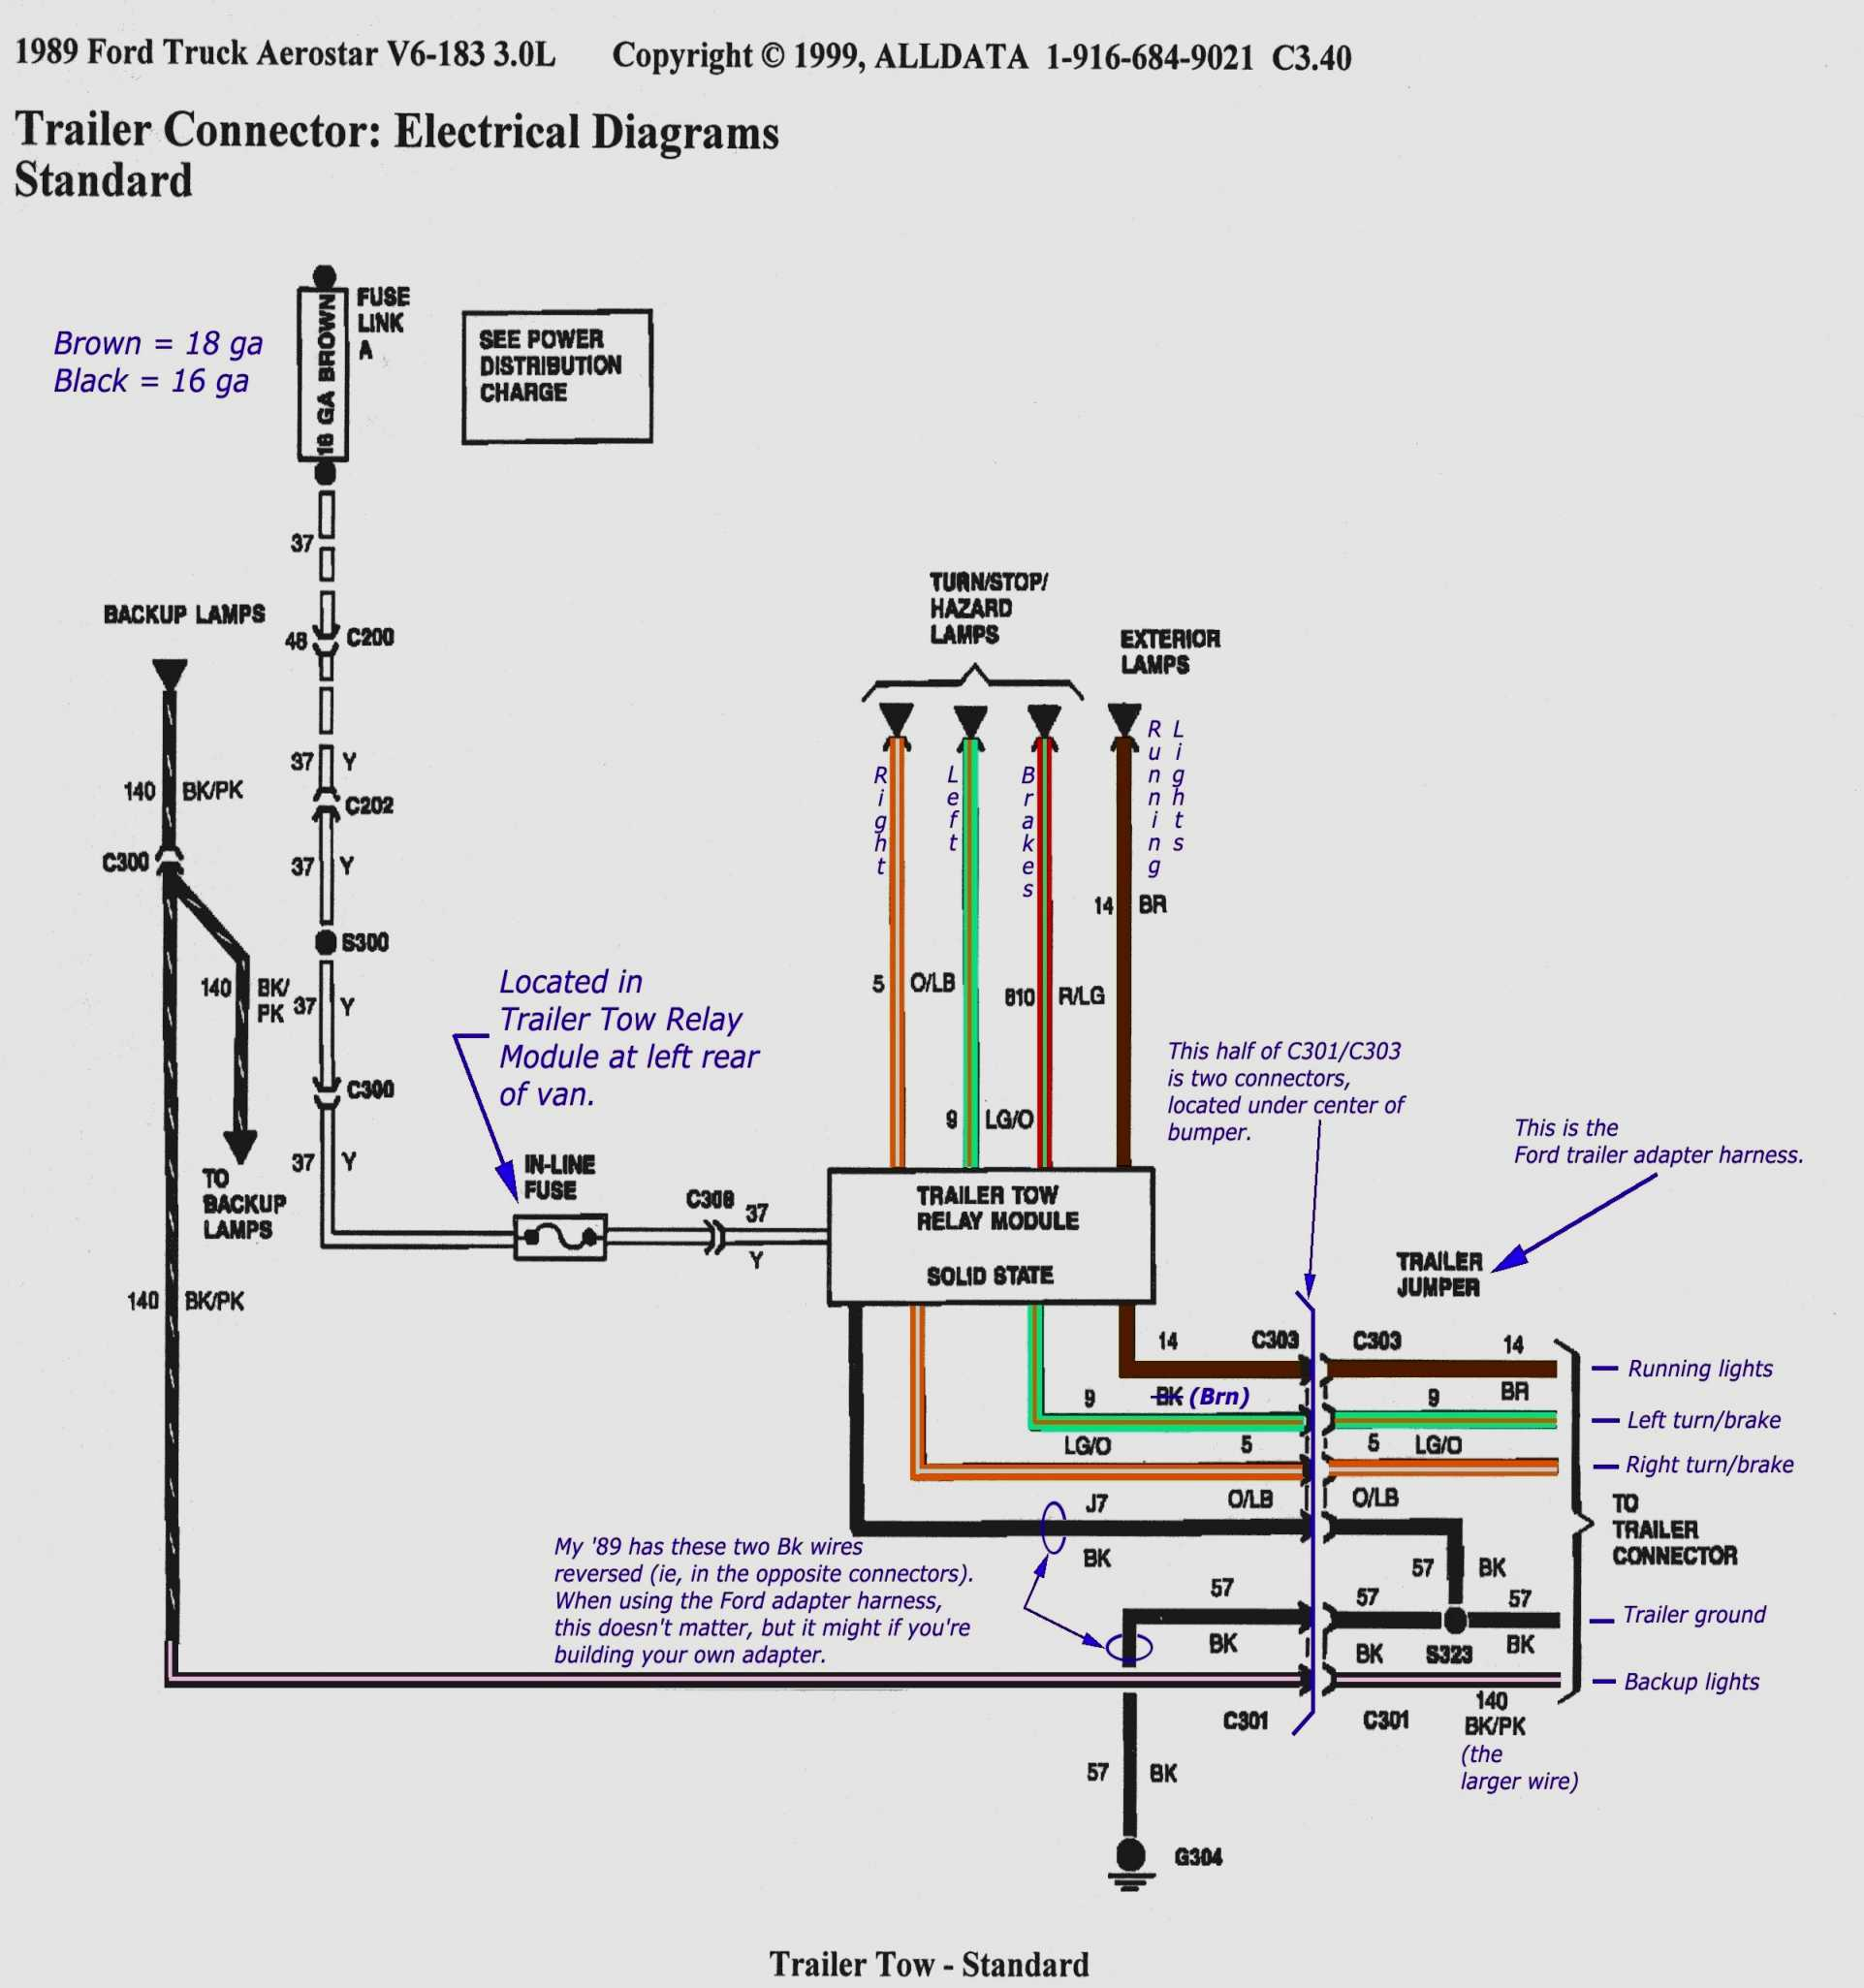 Ford Trailer Wiring Diagram 7 | Wiring Diagram - Wire Trailer Wiring Diagram